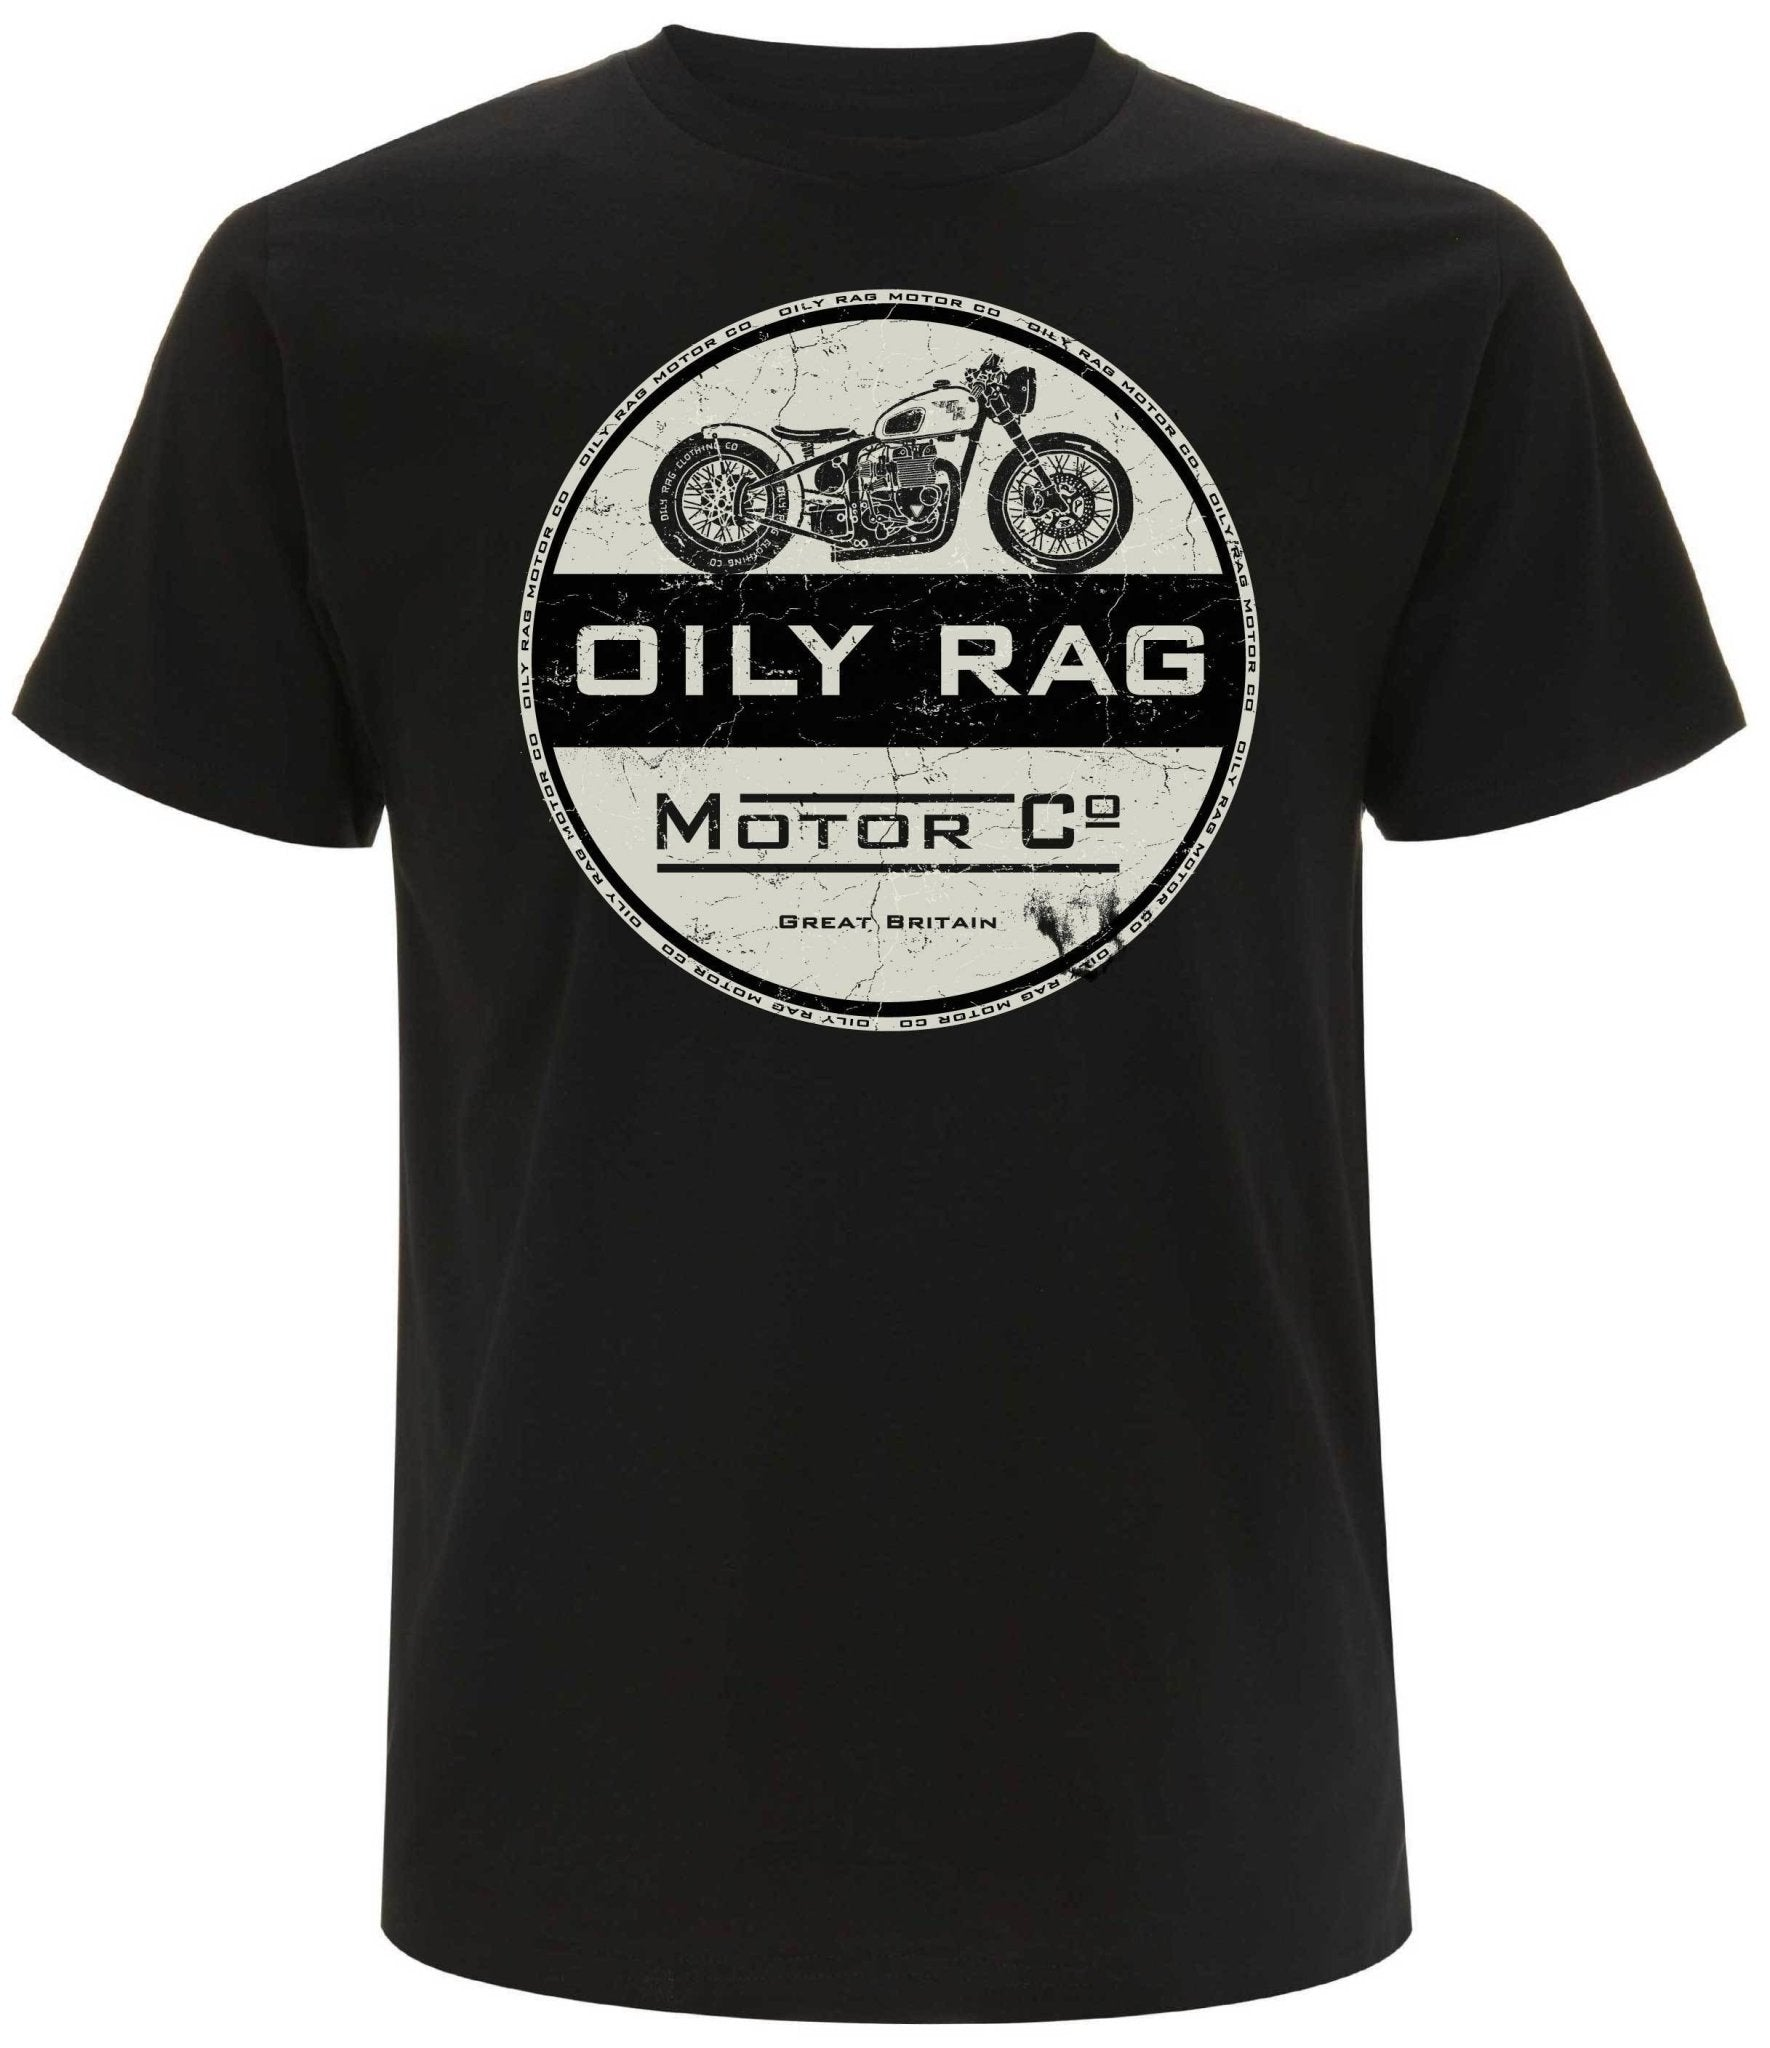 Oily Rag Clothing-Oily Rag Clothing Black Label Motor Co T' Shirt-T-Shirts-Salt Flats Clothing